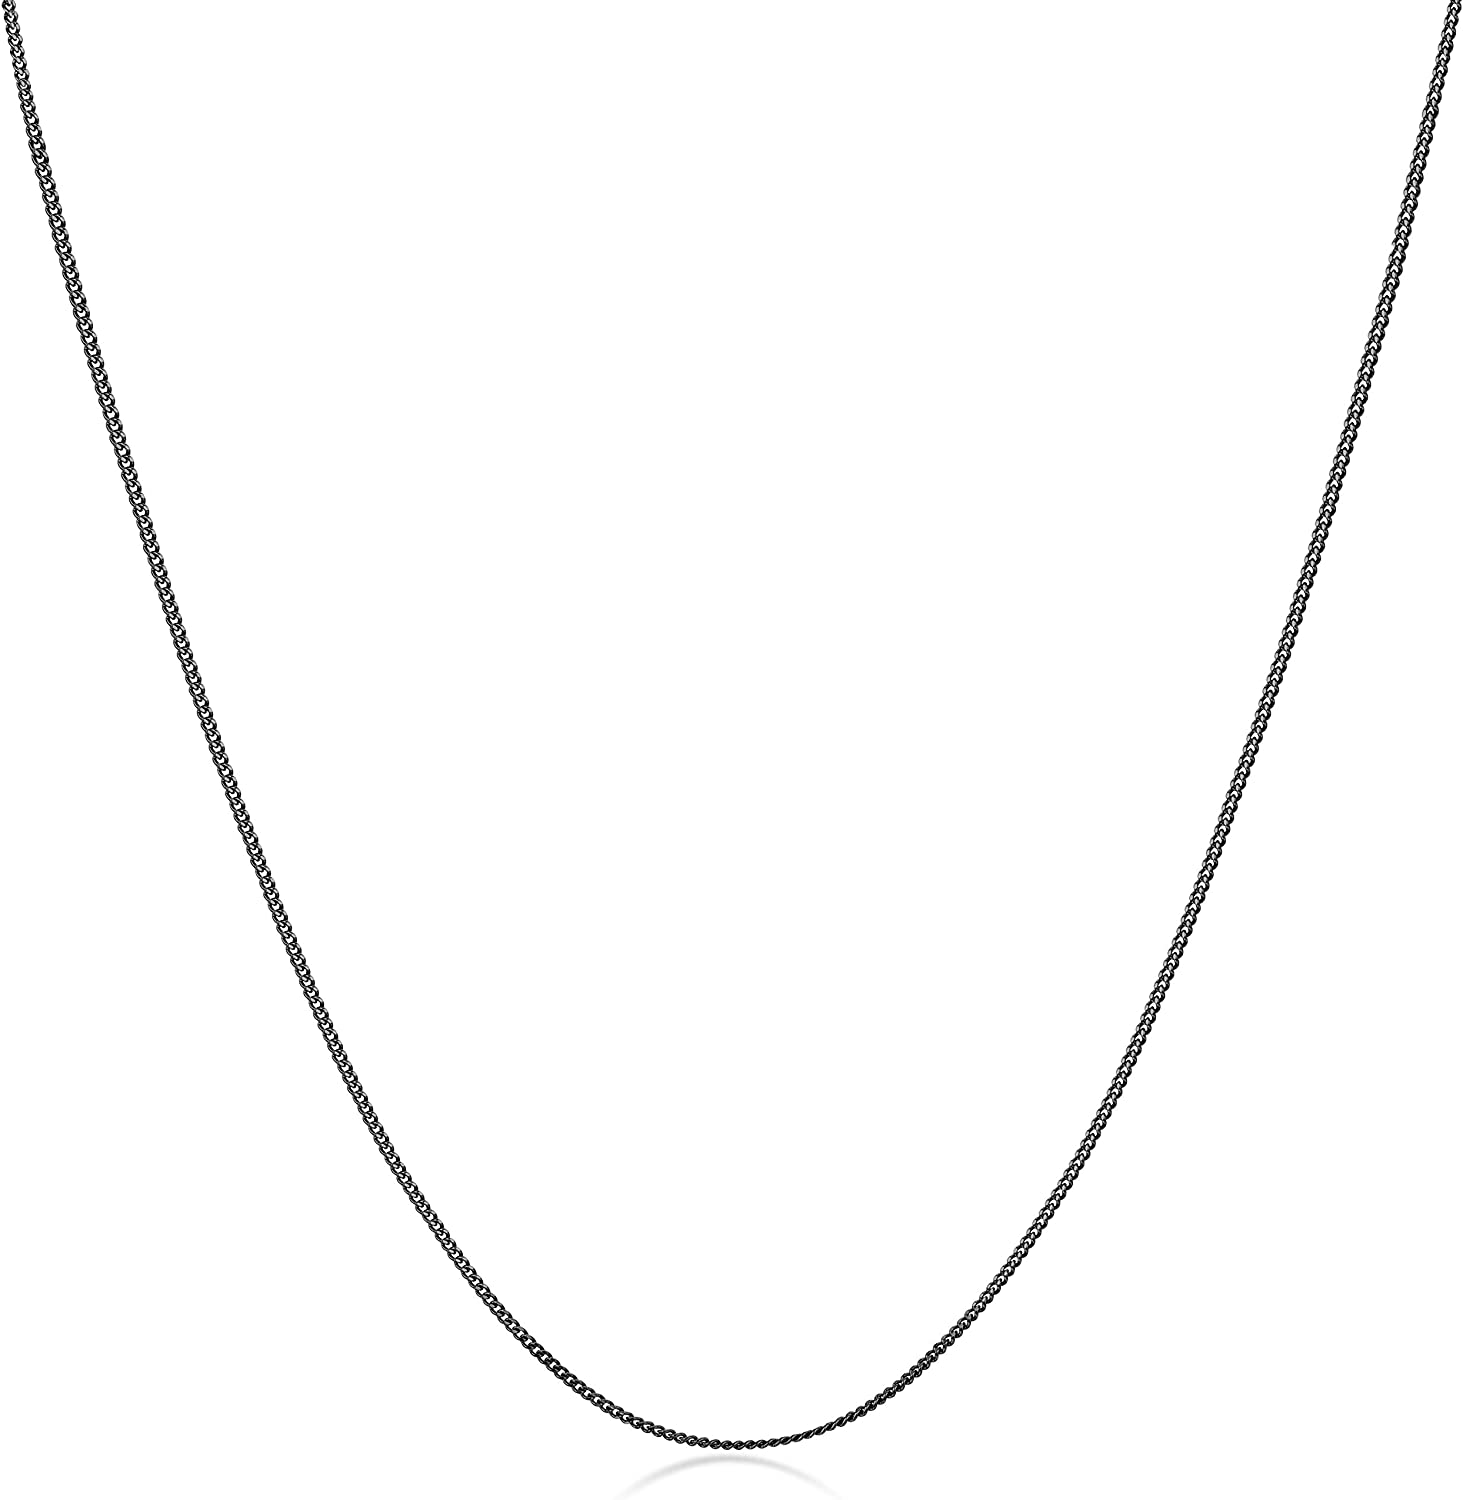 Various Lengths Royal Black Collection 925 Sterling Silver 1.3 mm Curb Chain Necklace Amberta